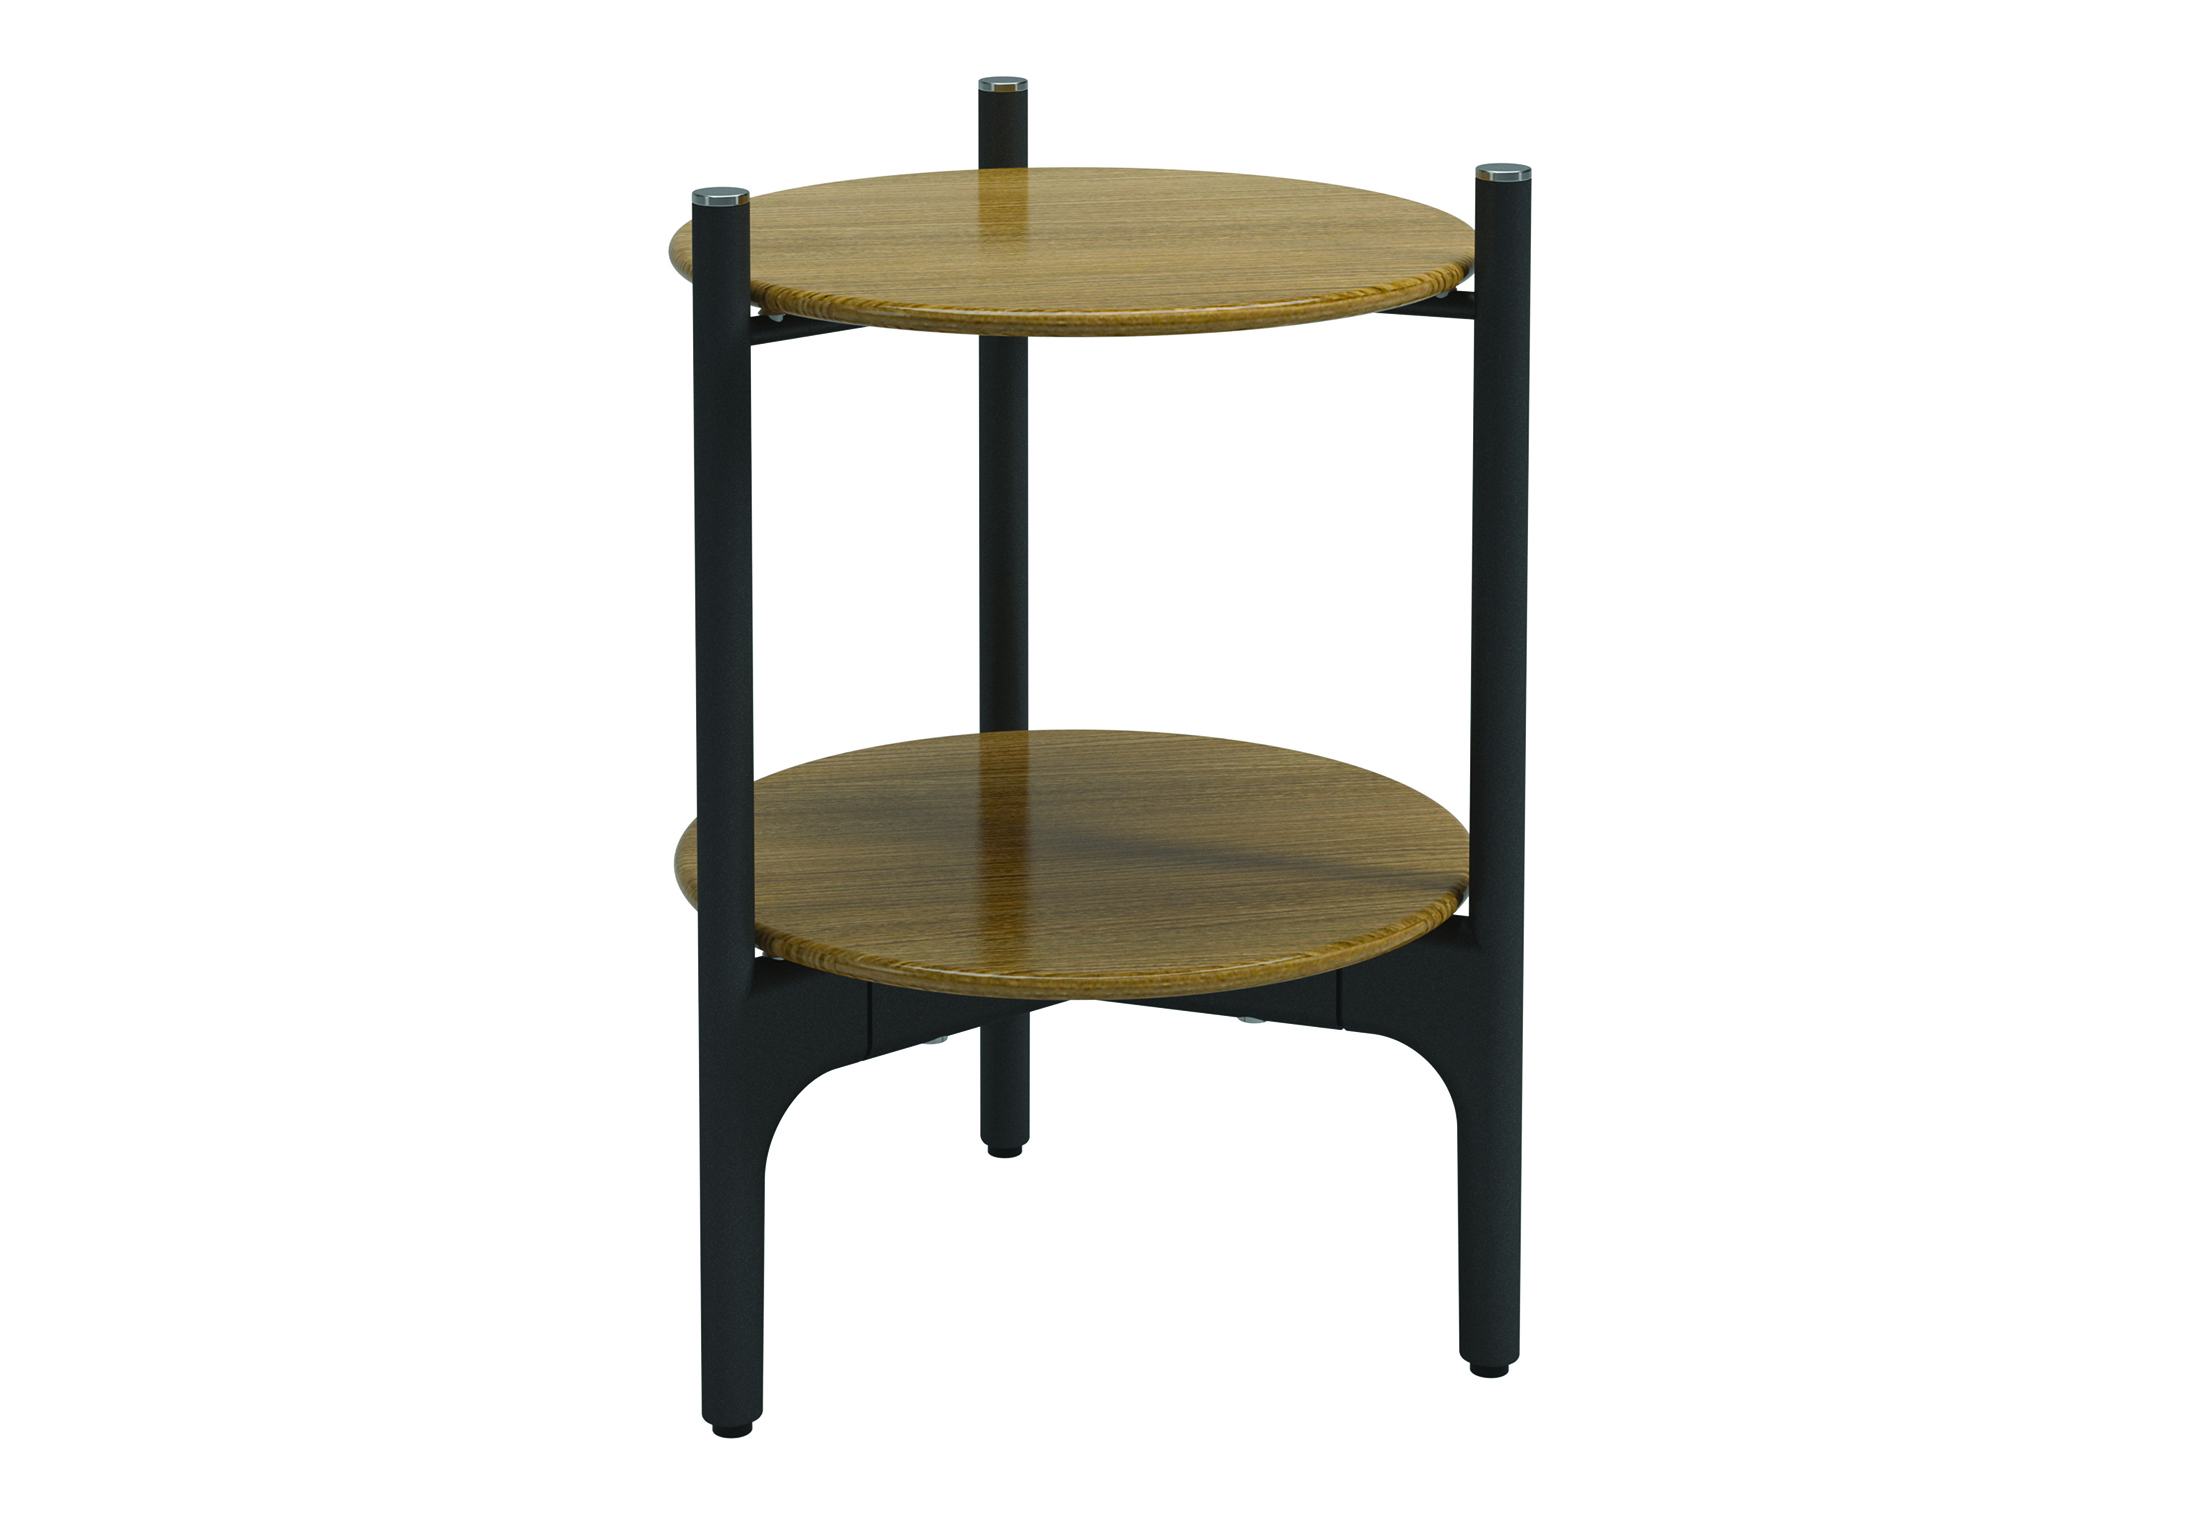 Grand weave round side table by gloster furniture stylepark for Grande table